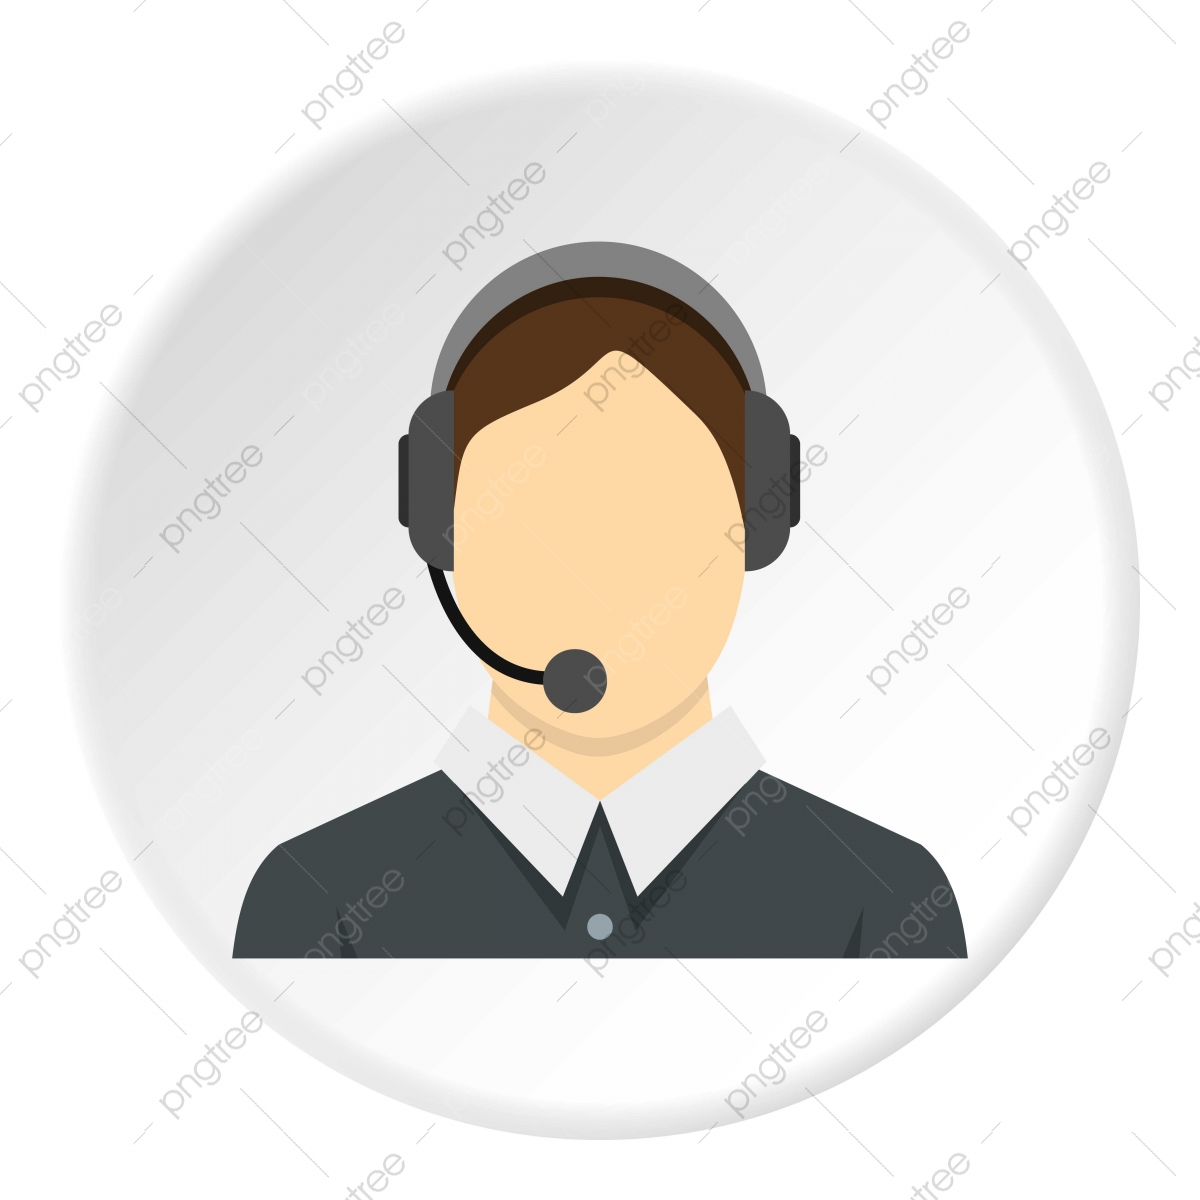 call center operator icon circle call icons circle icons center icons png and vector with transparent background for free download https pngtree com freepng call center operator icon circle 5282415 html